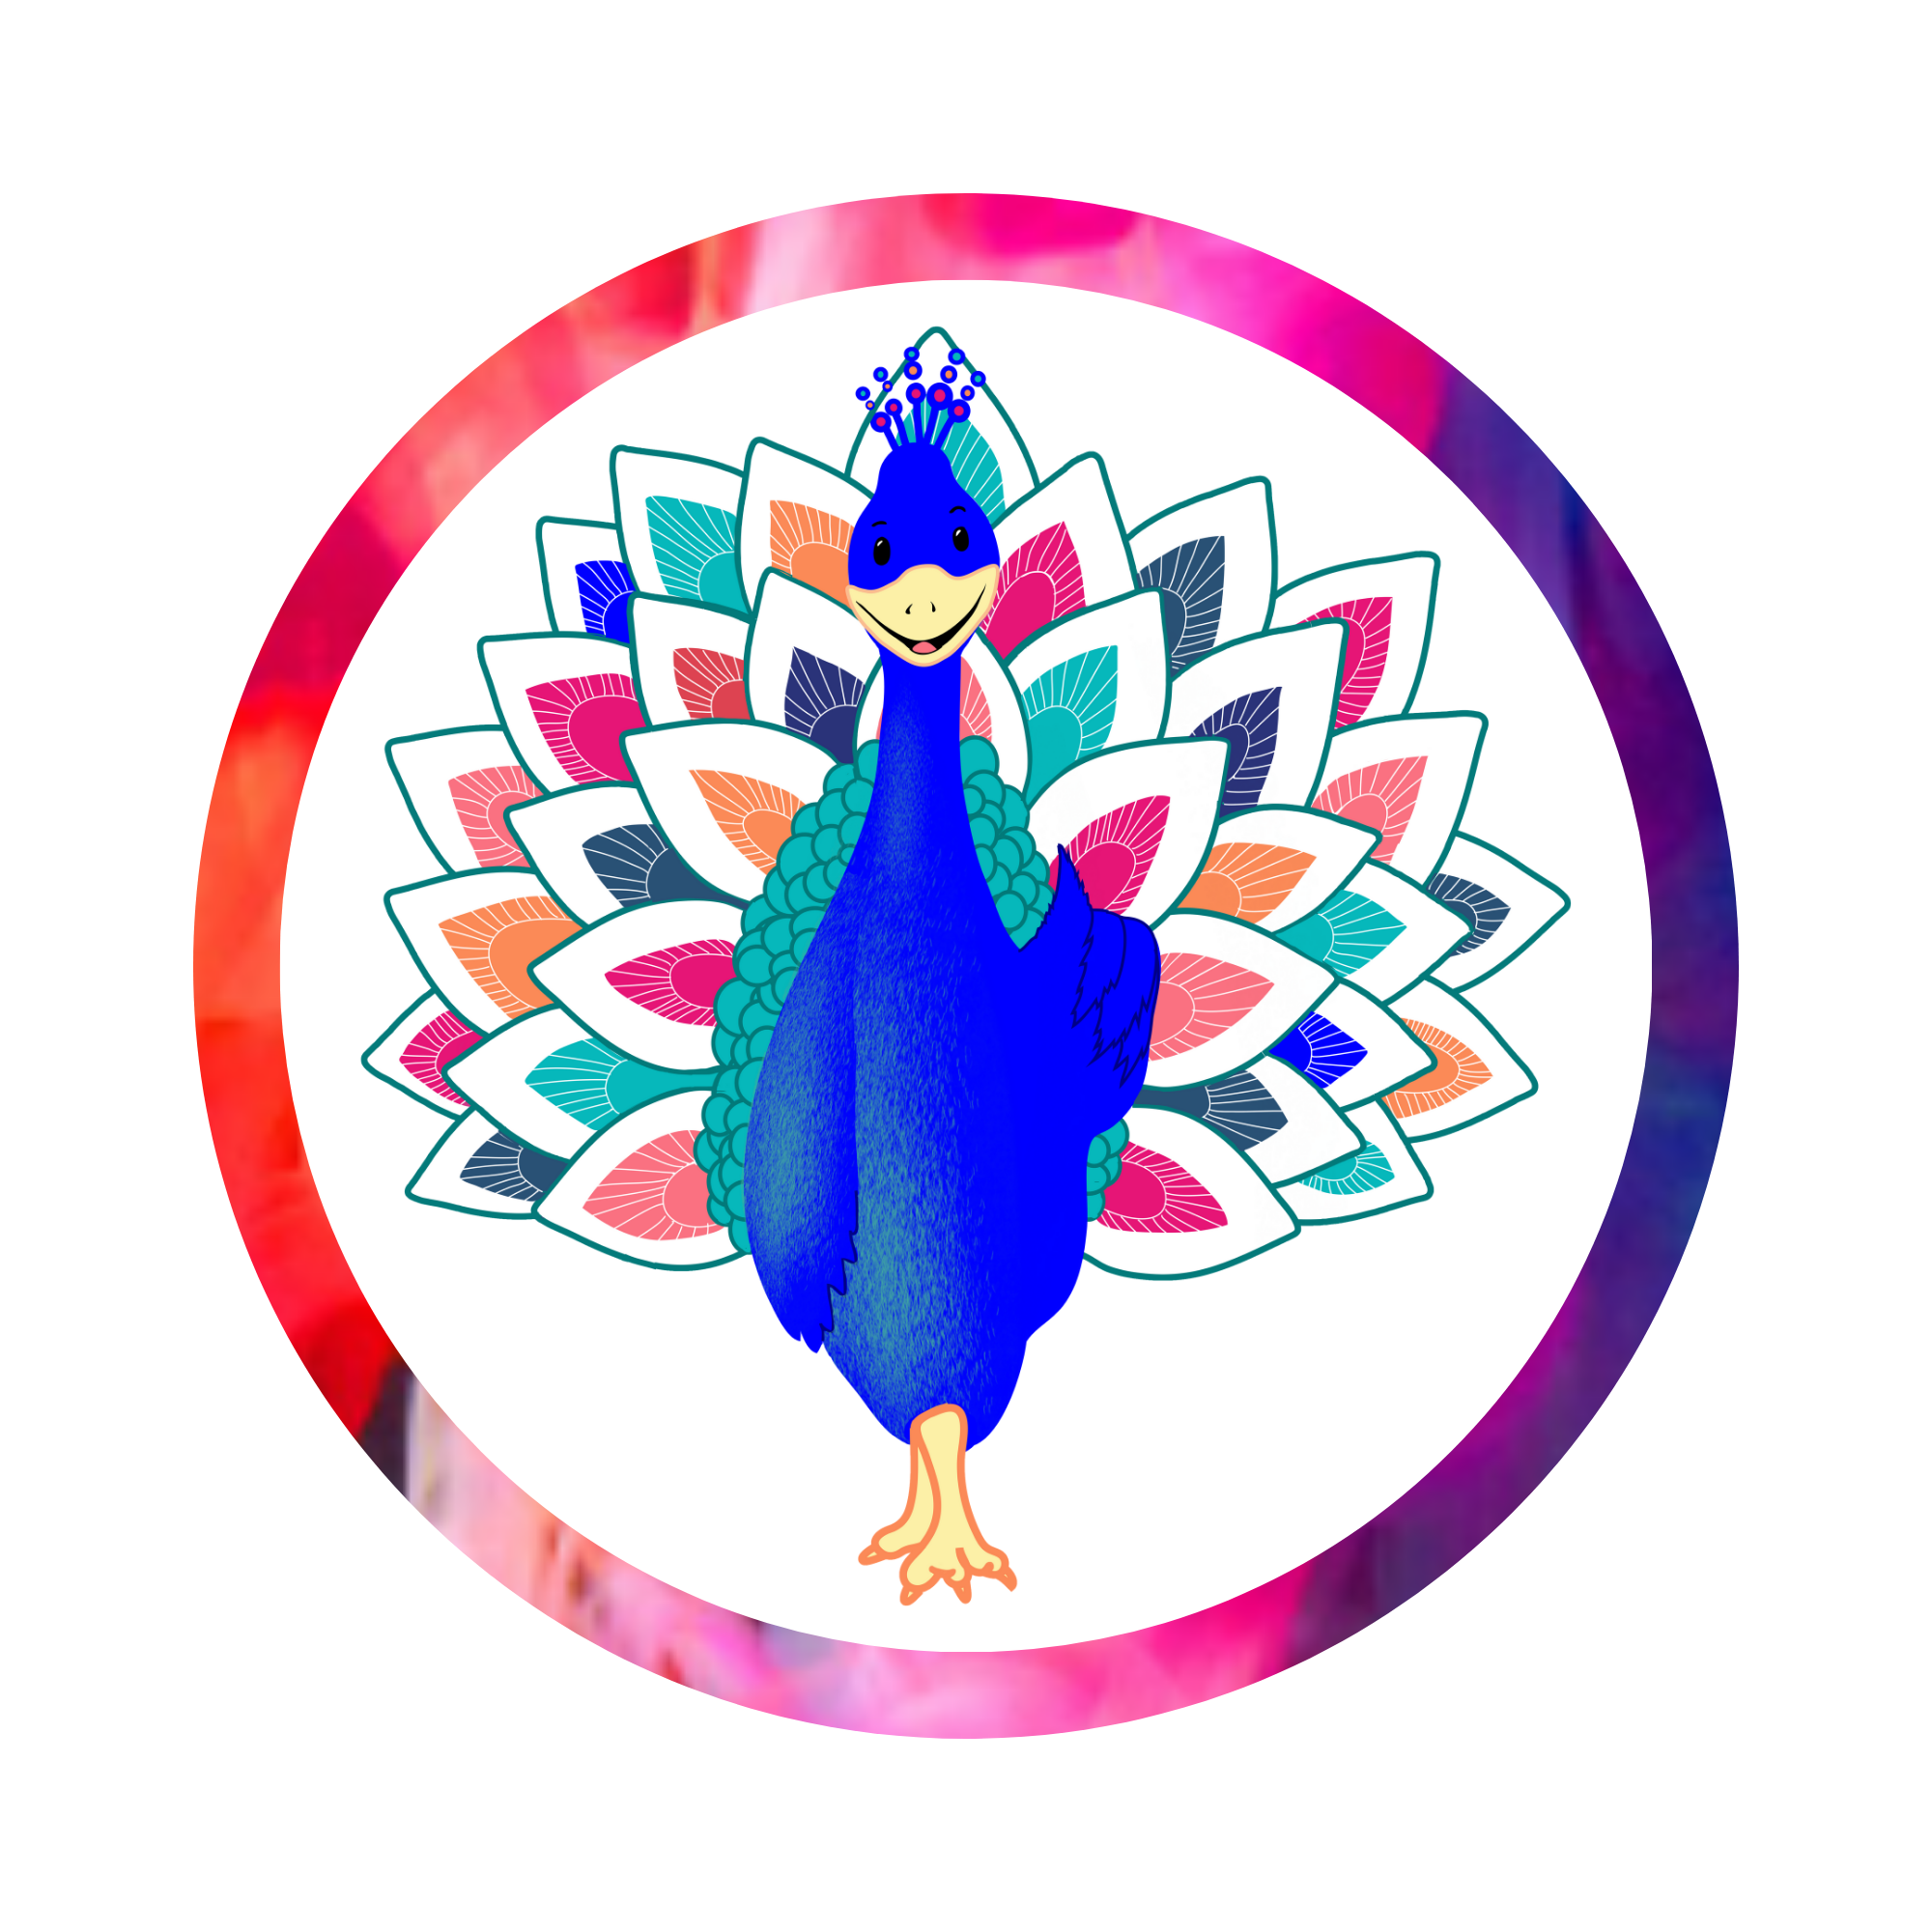 Affirmation Cards For Kids - Pax the Peacock